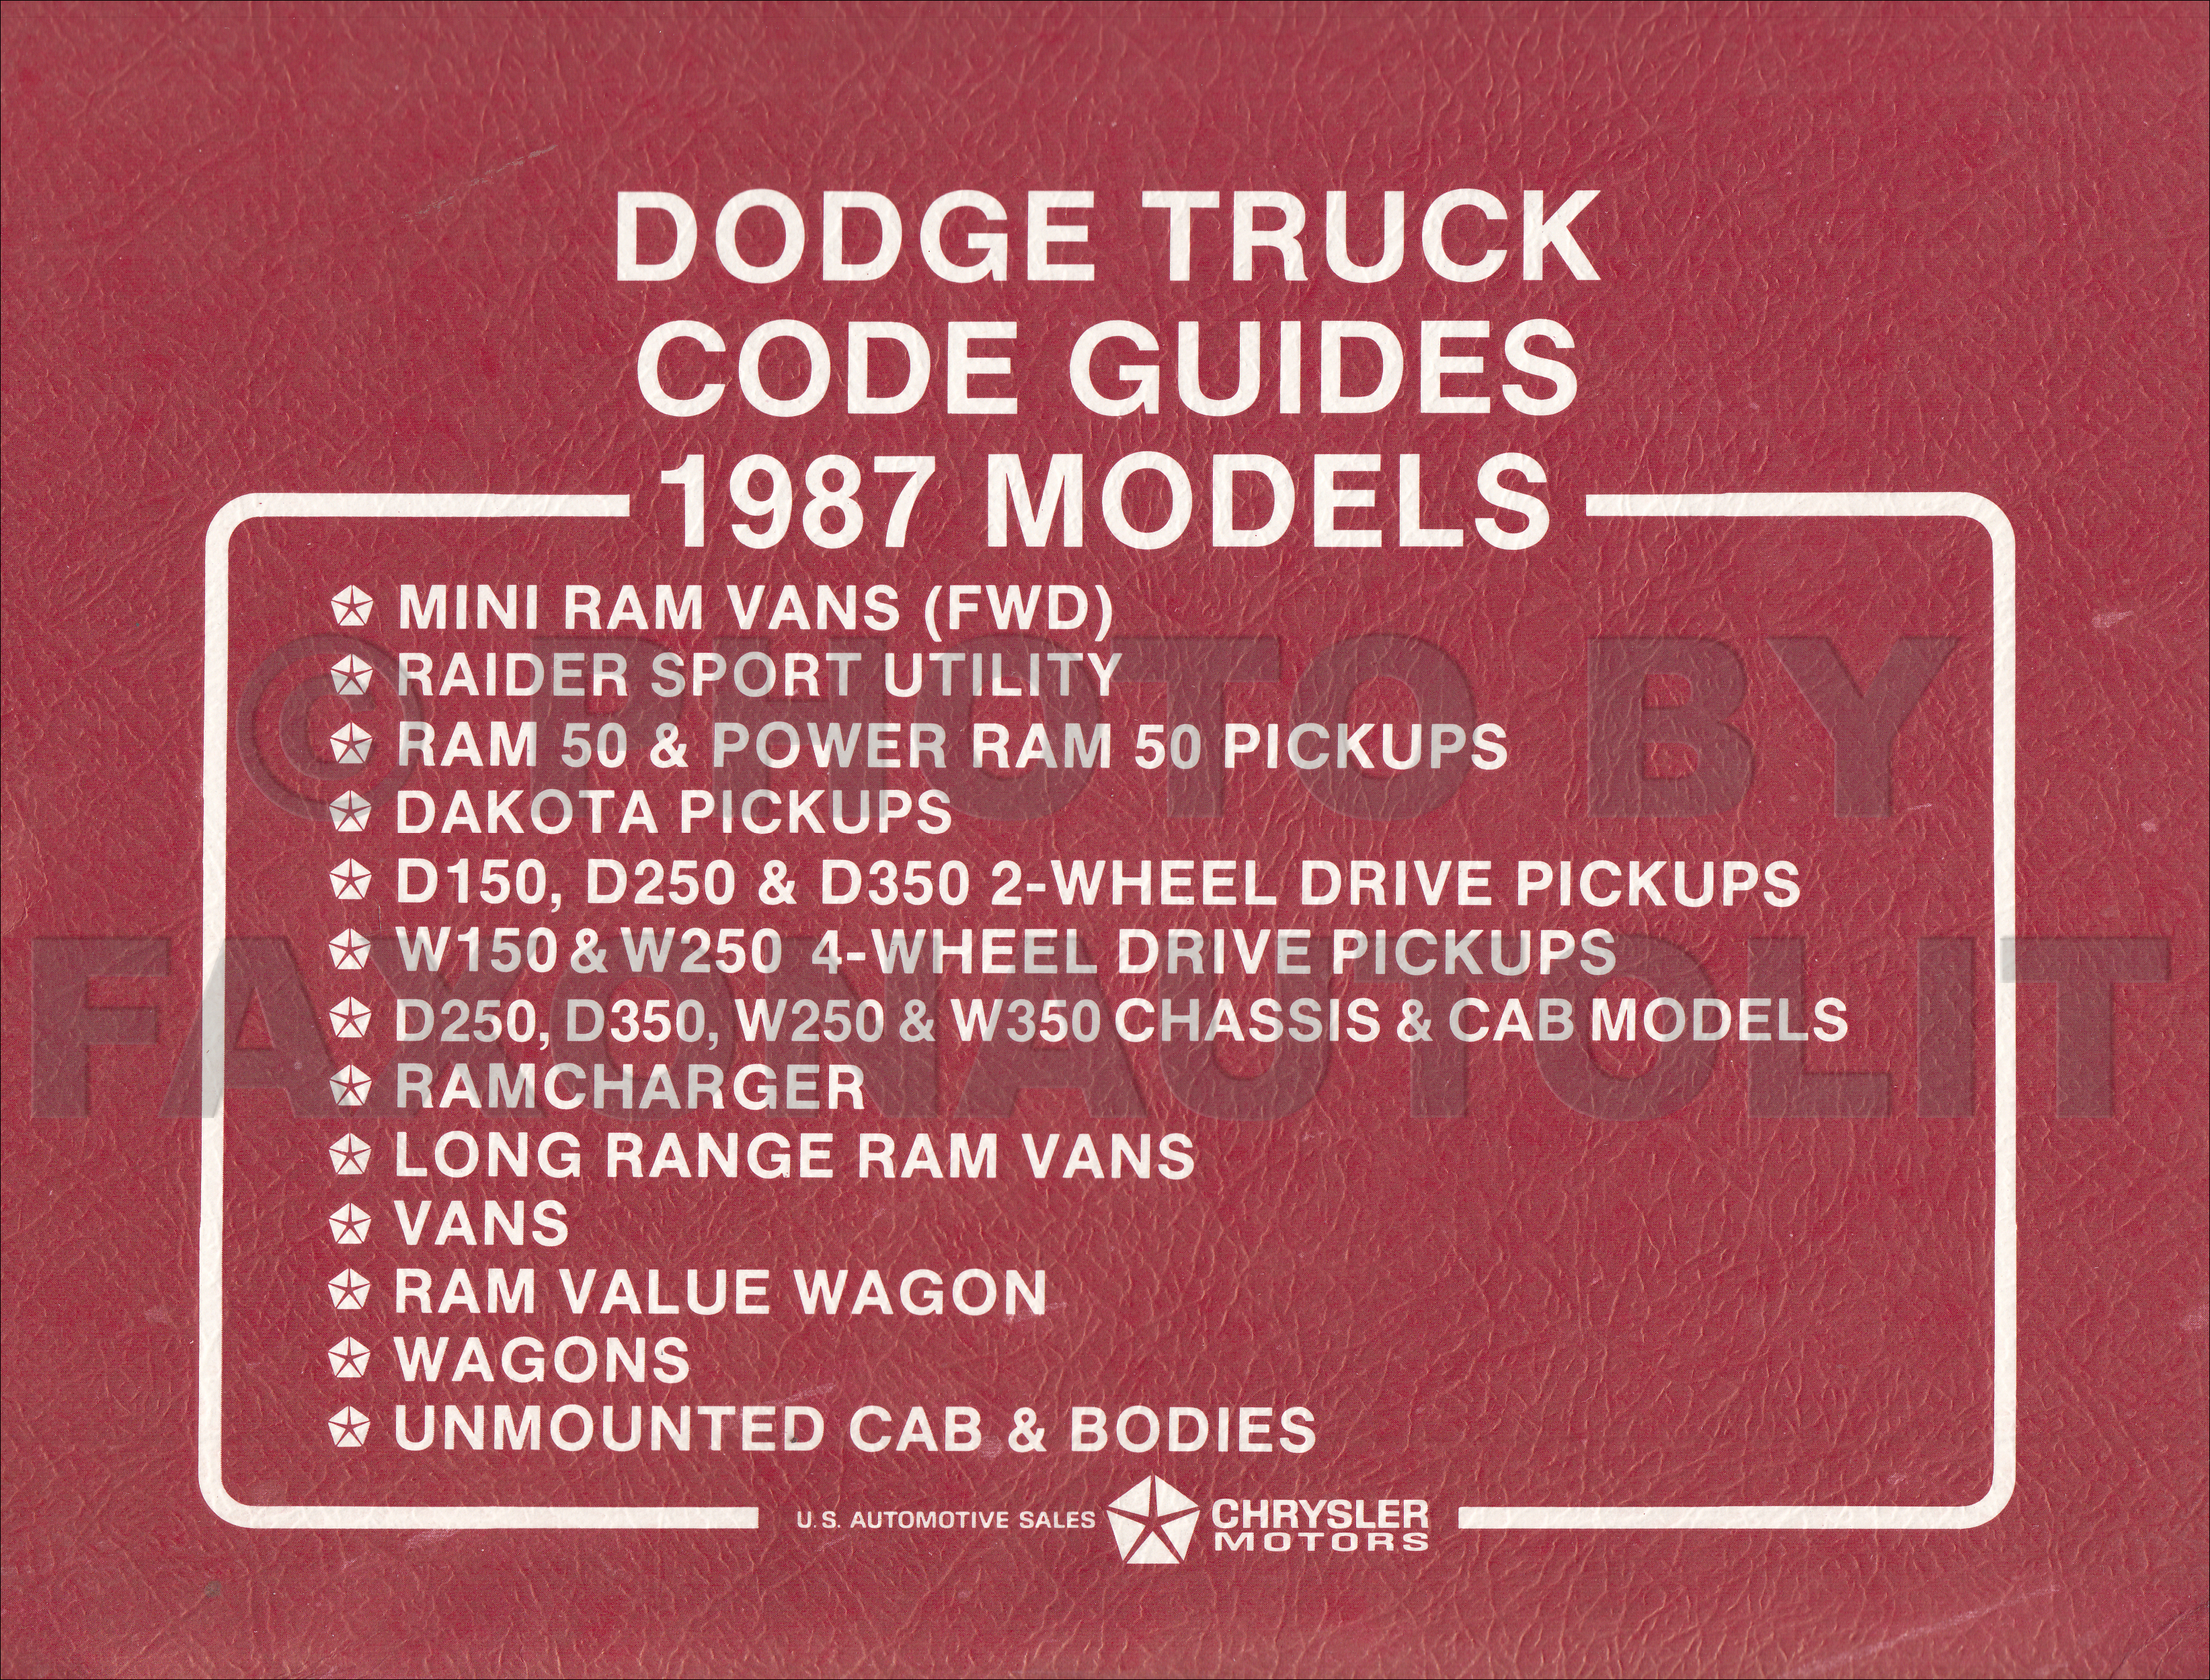 1987 Dodge Truck Ordering Guide Original